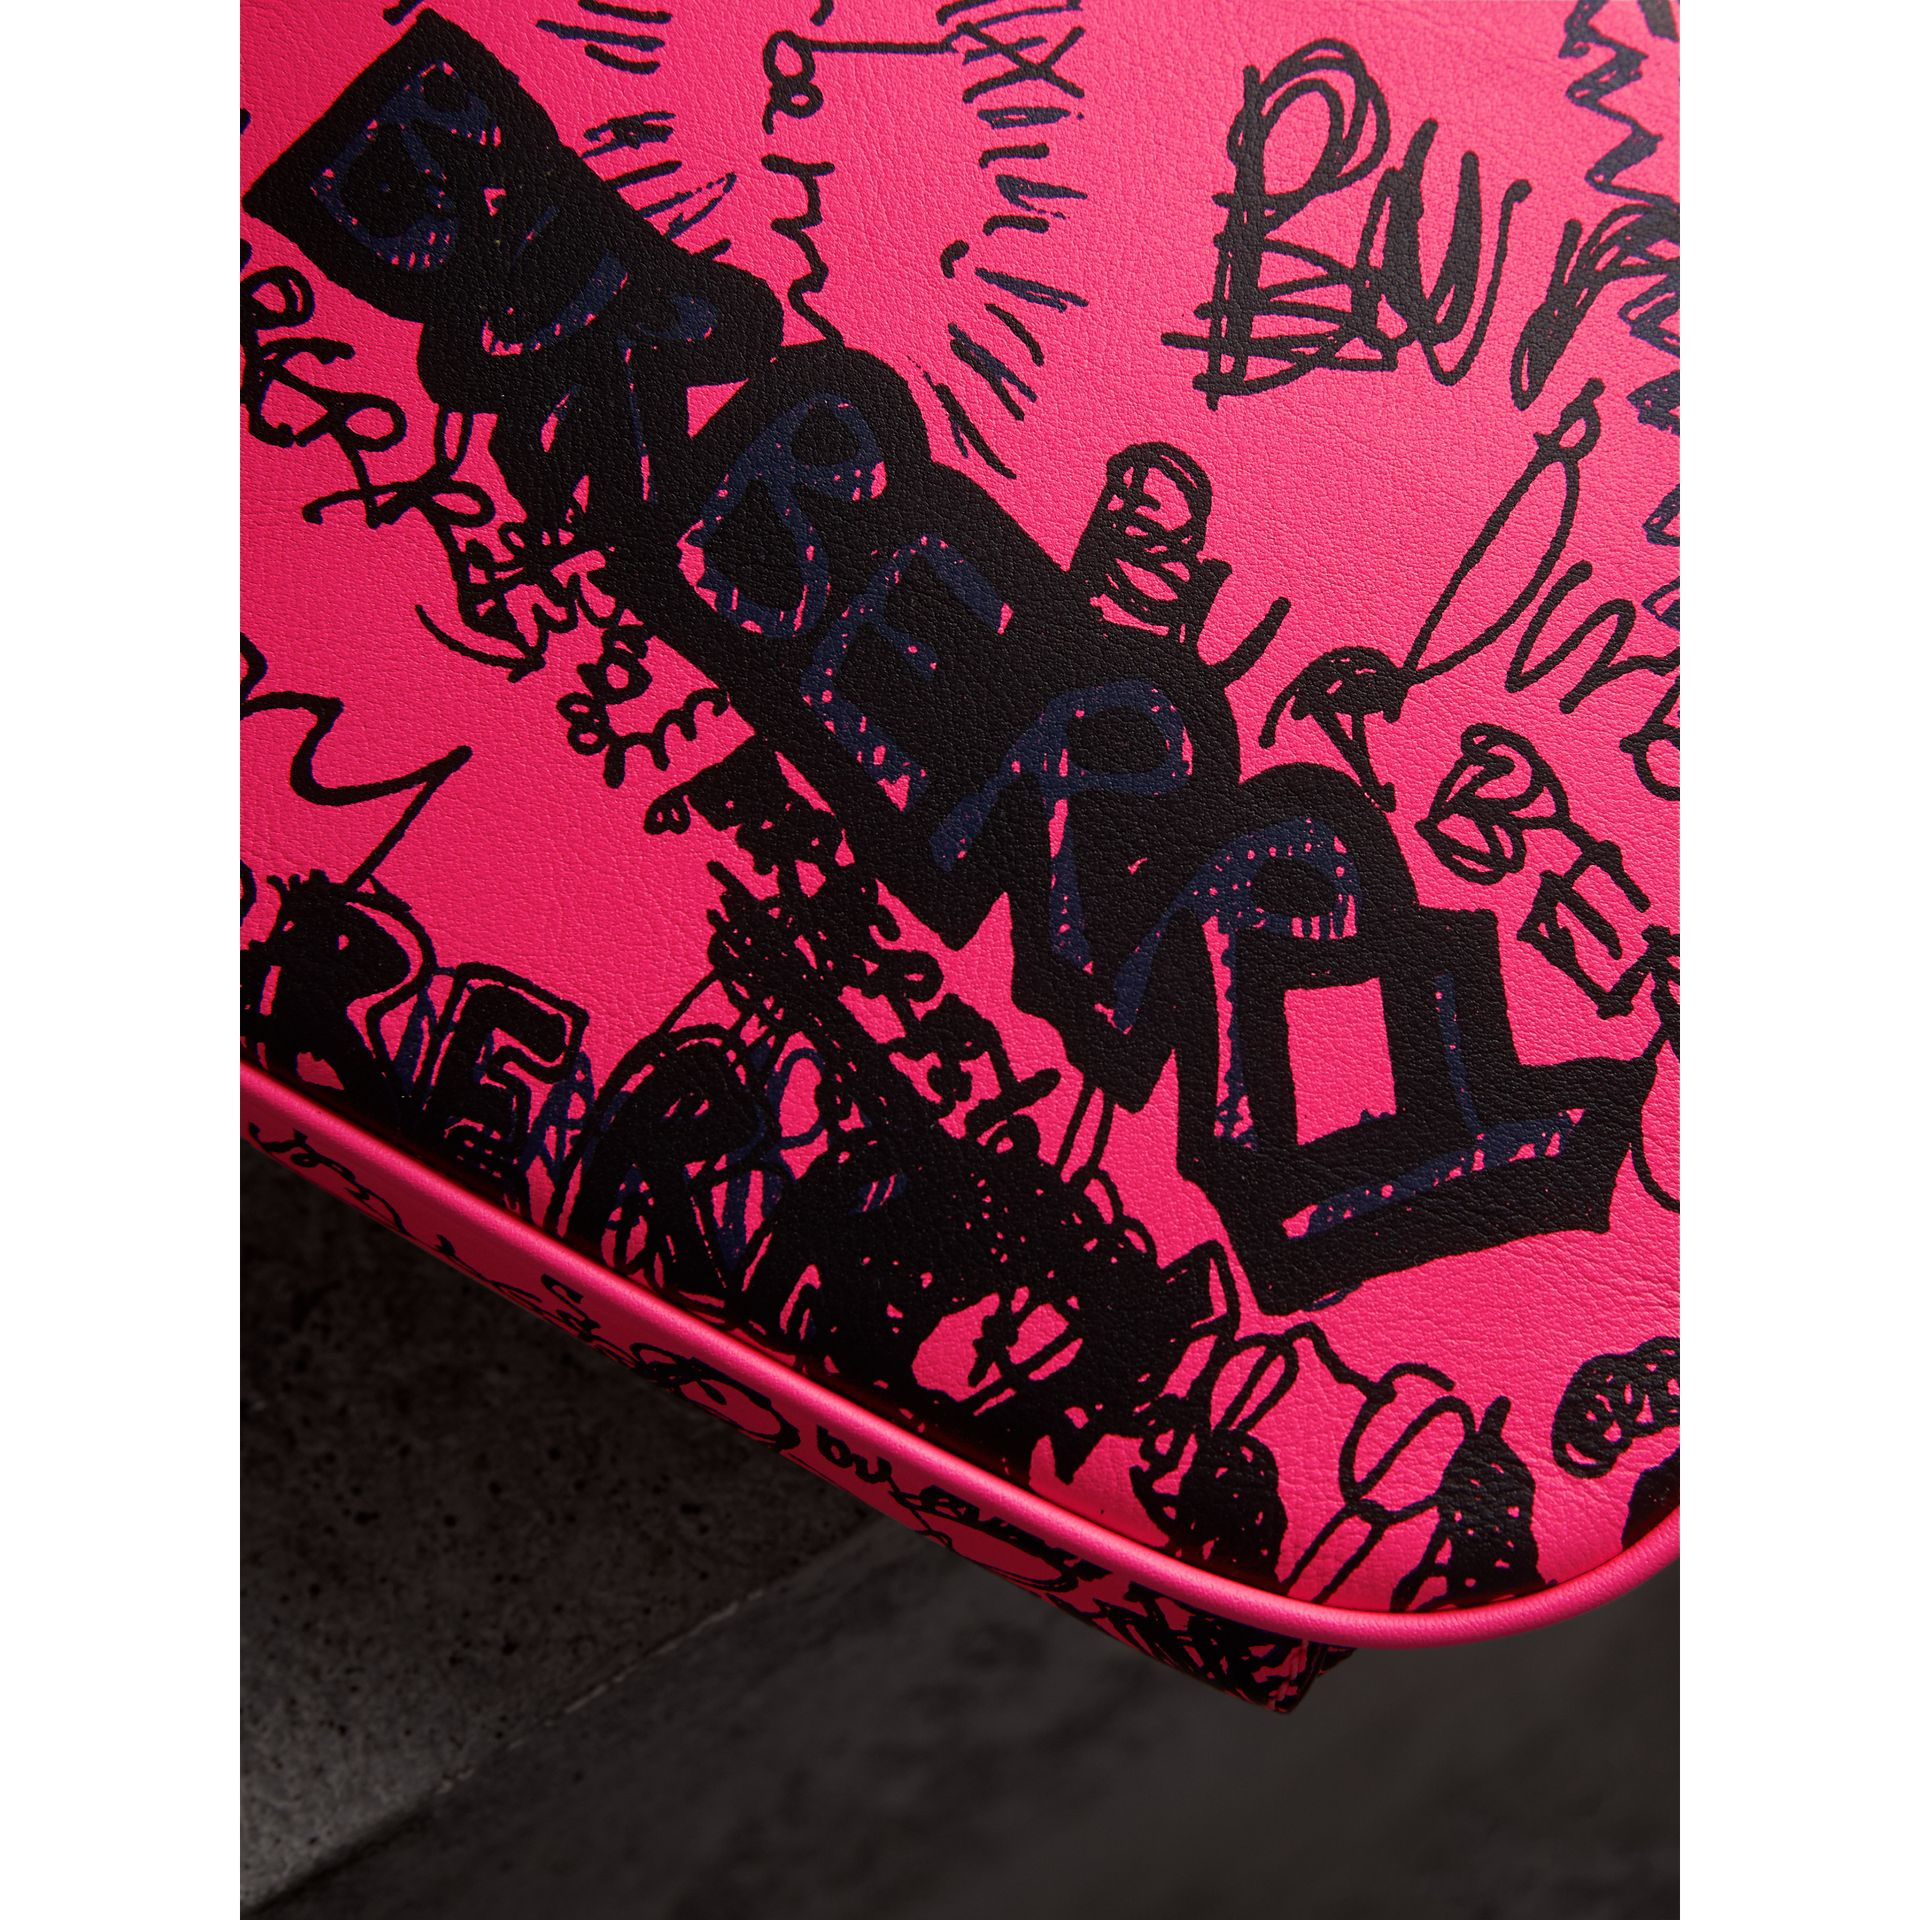 Small Doodle Print Leather Metal Frame Clutch Bag in Neon Pink - Women | Burberry - gallery image 1